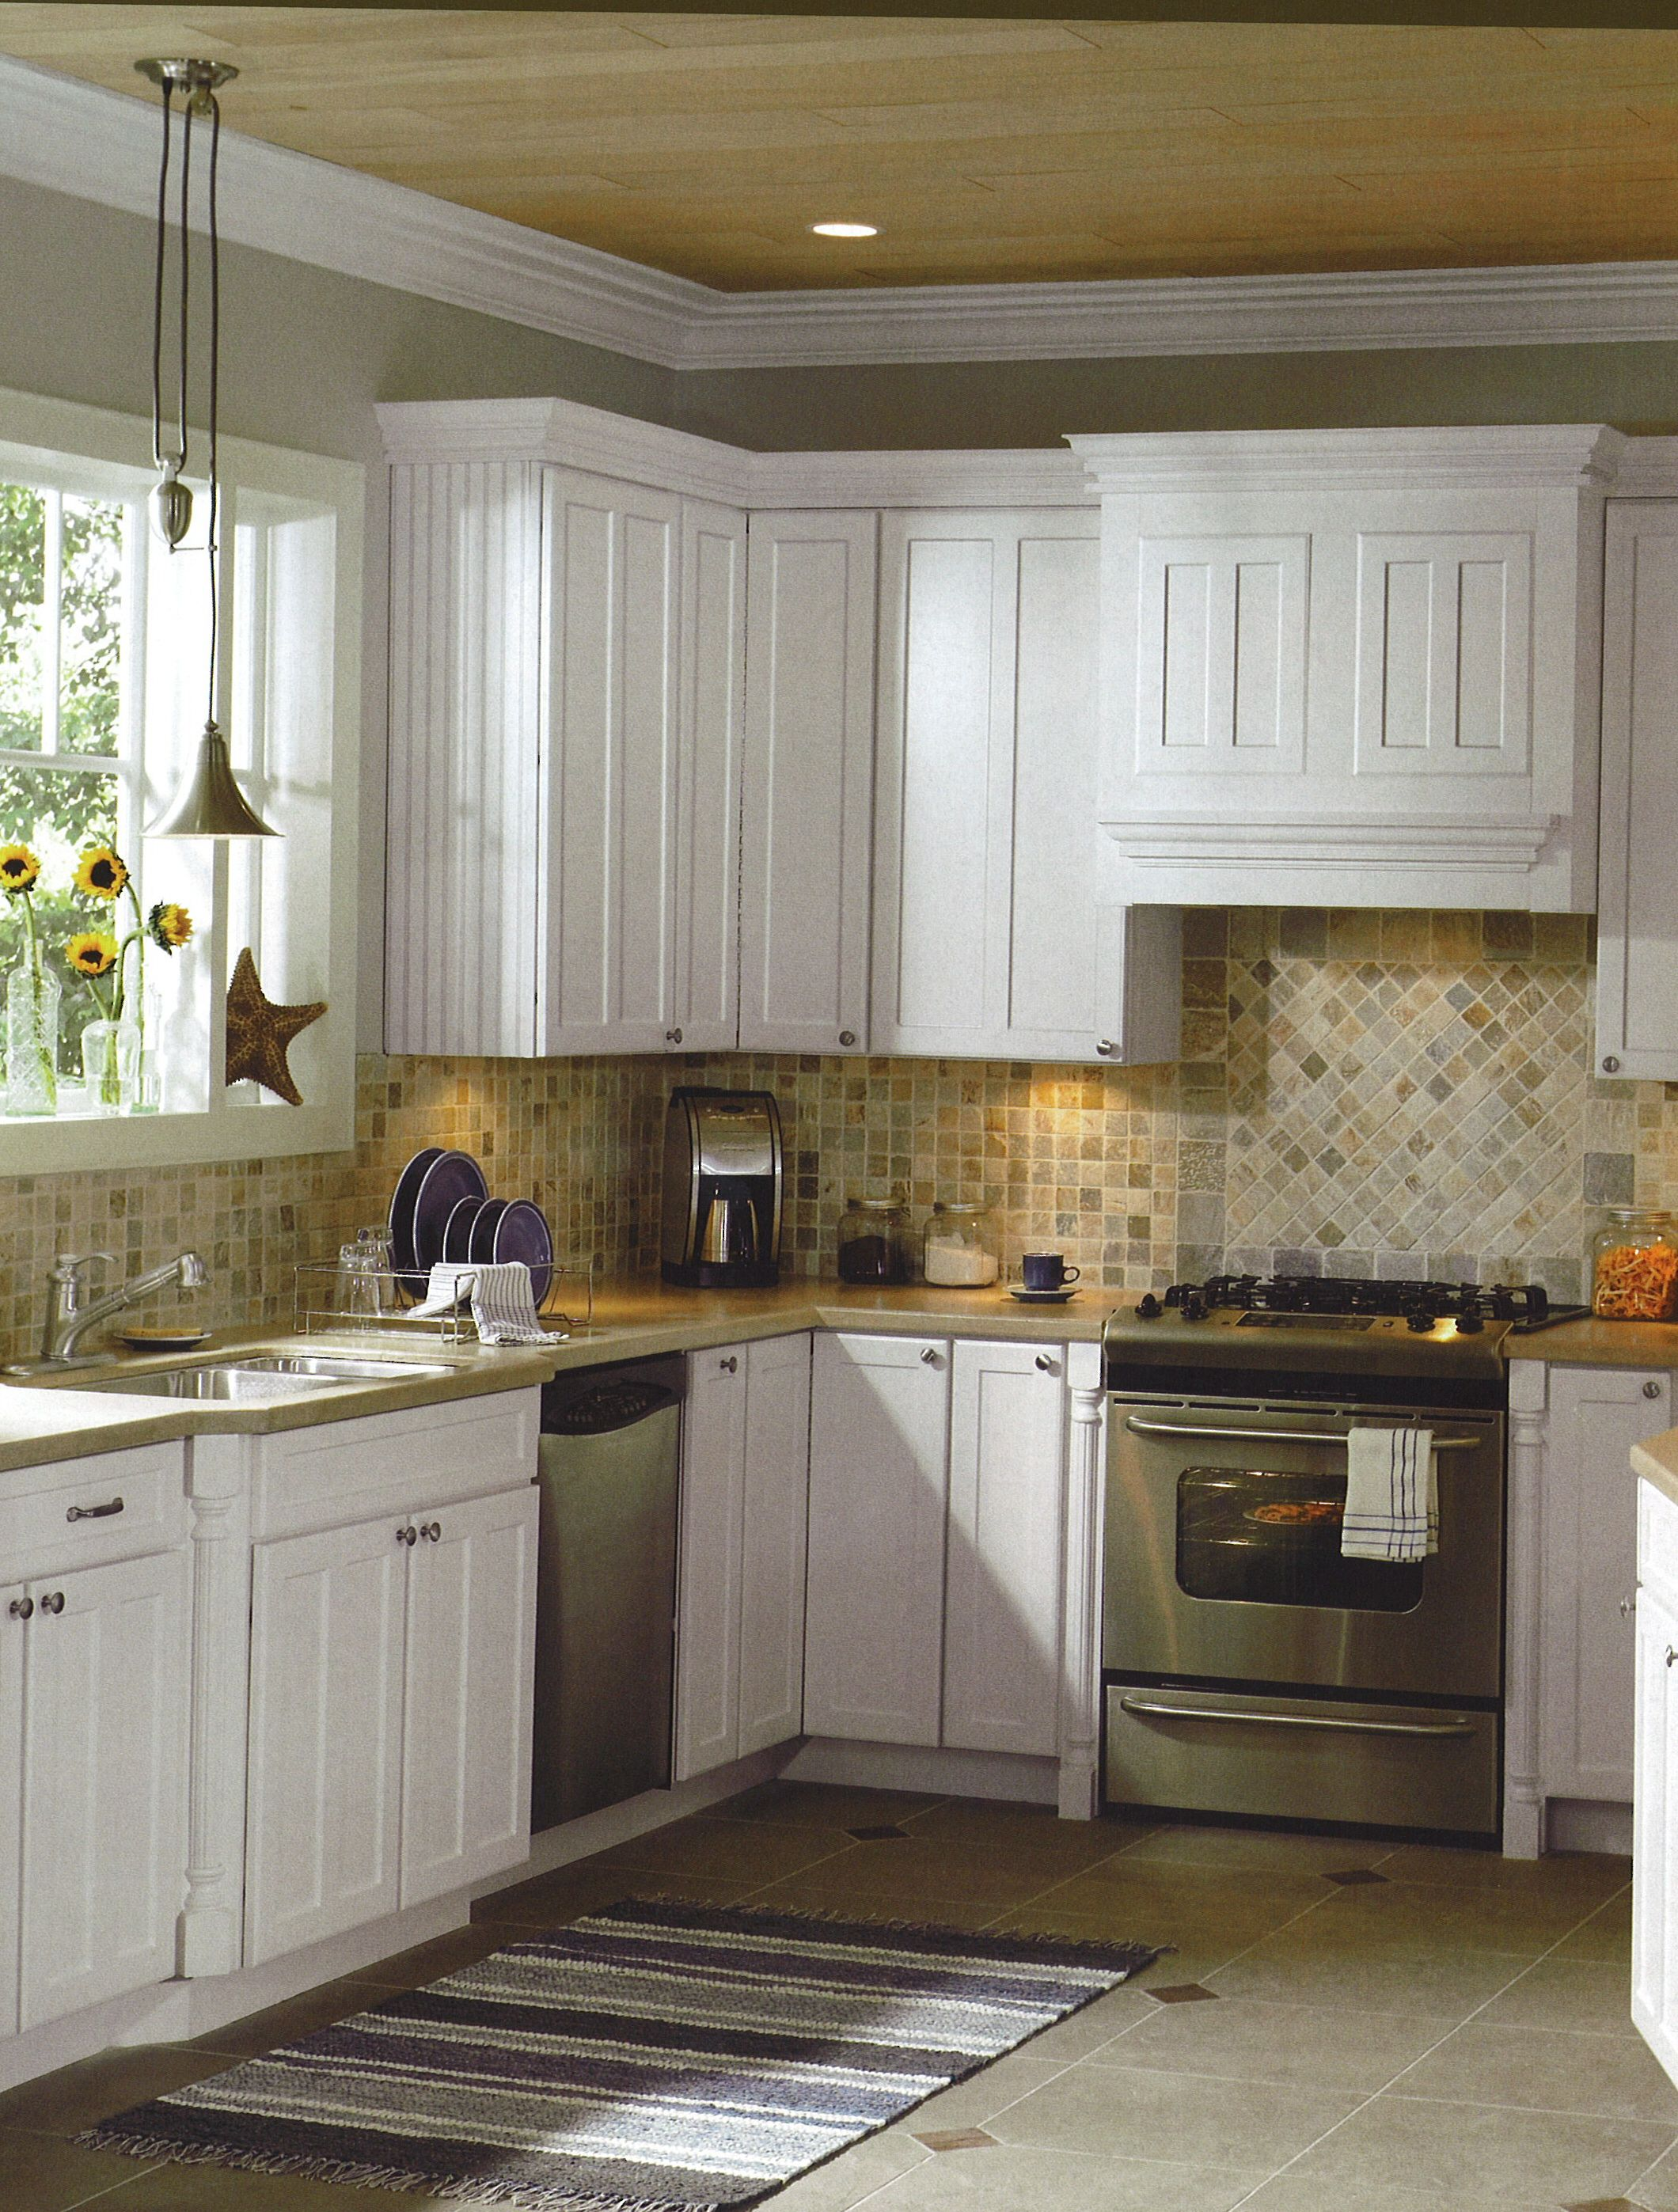 Minimalist Country Kitchen Design With White And